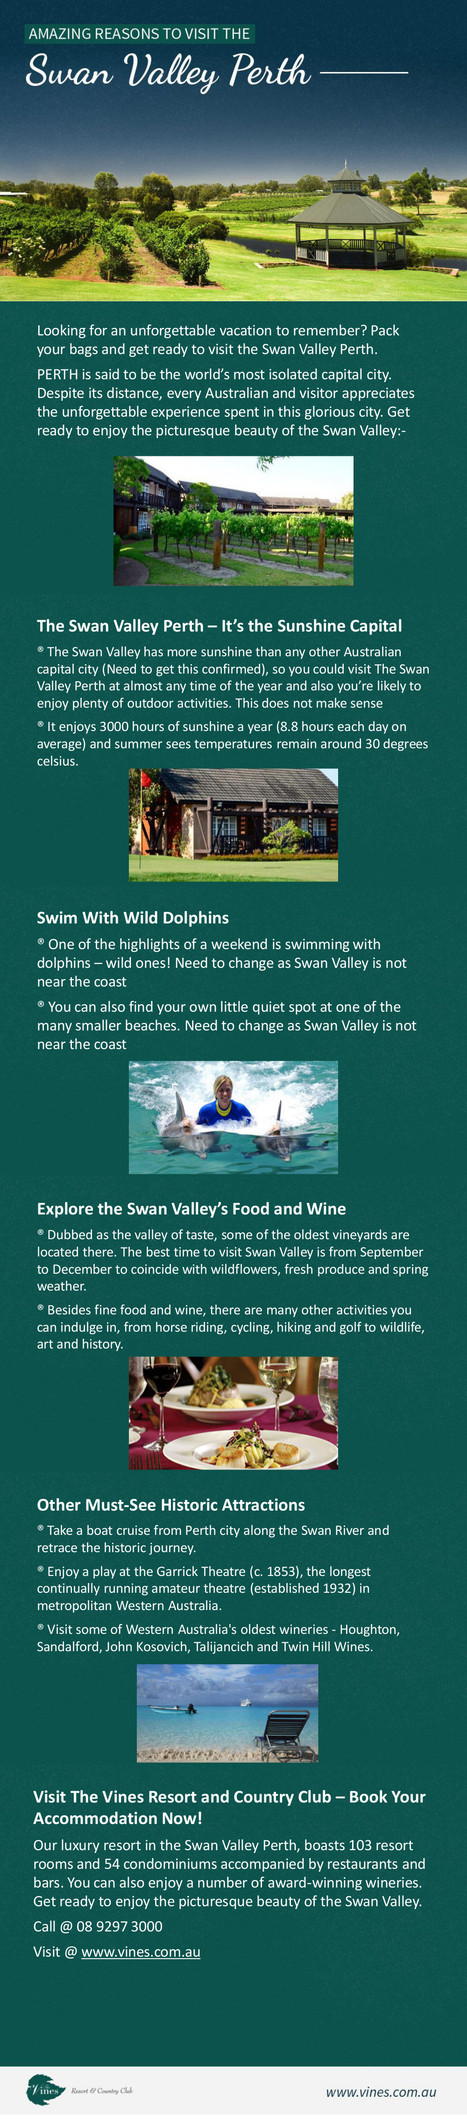 Amazing Reasons to Visit the Swan Valley Perth | Infographic Collection | Scoop.it